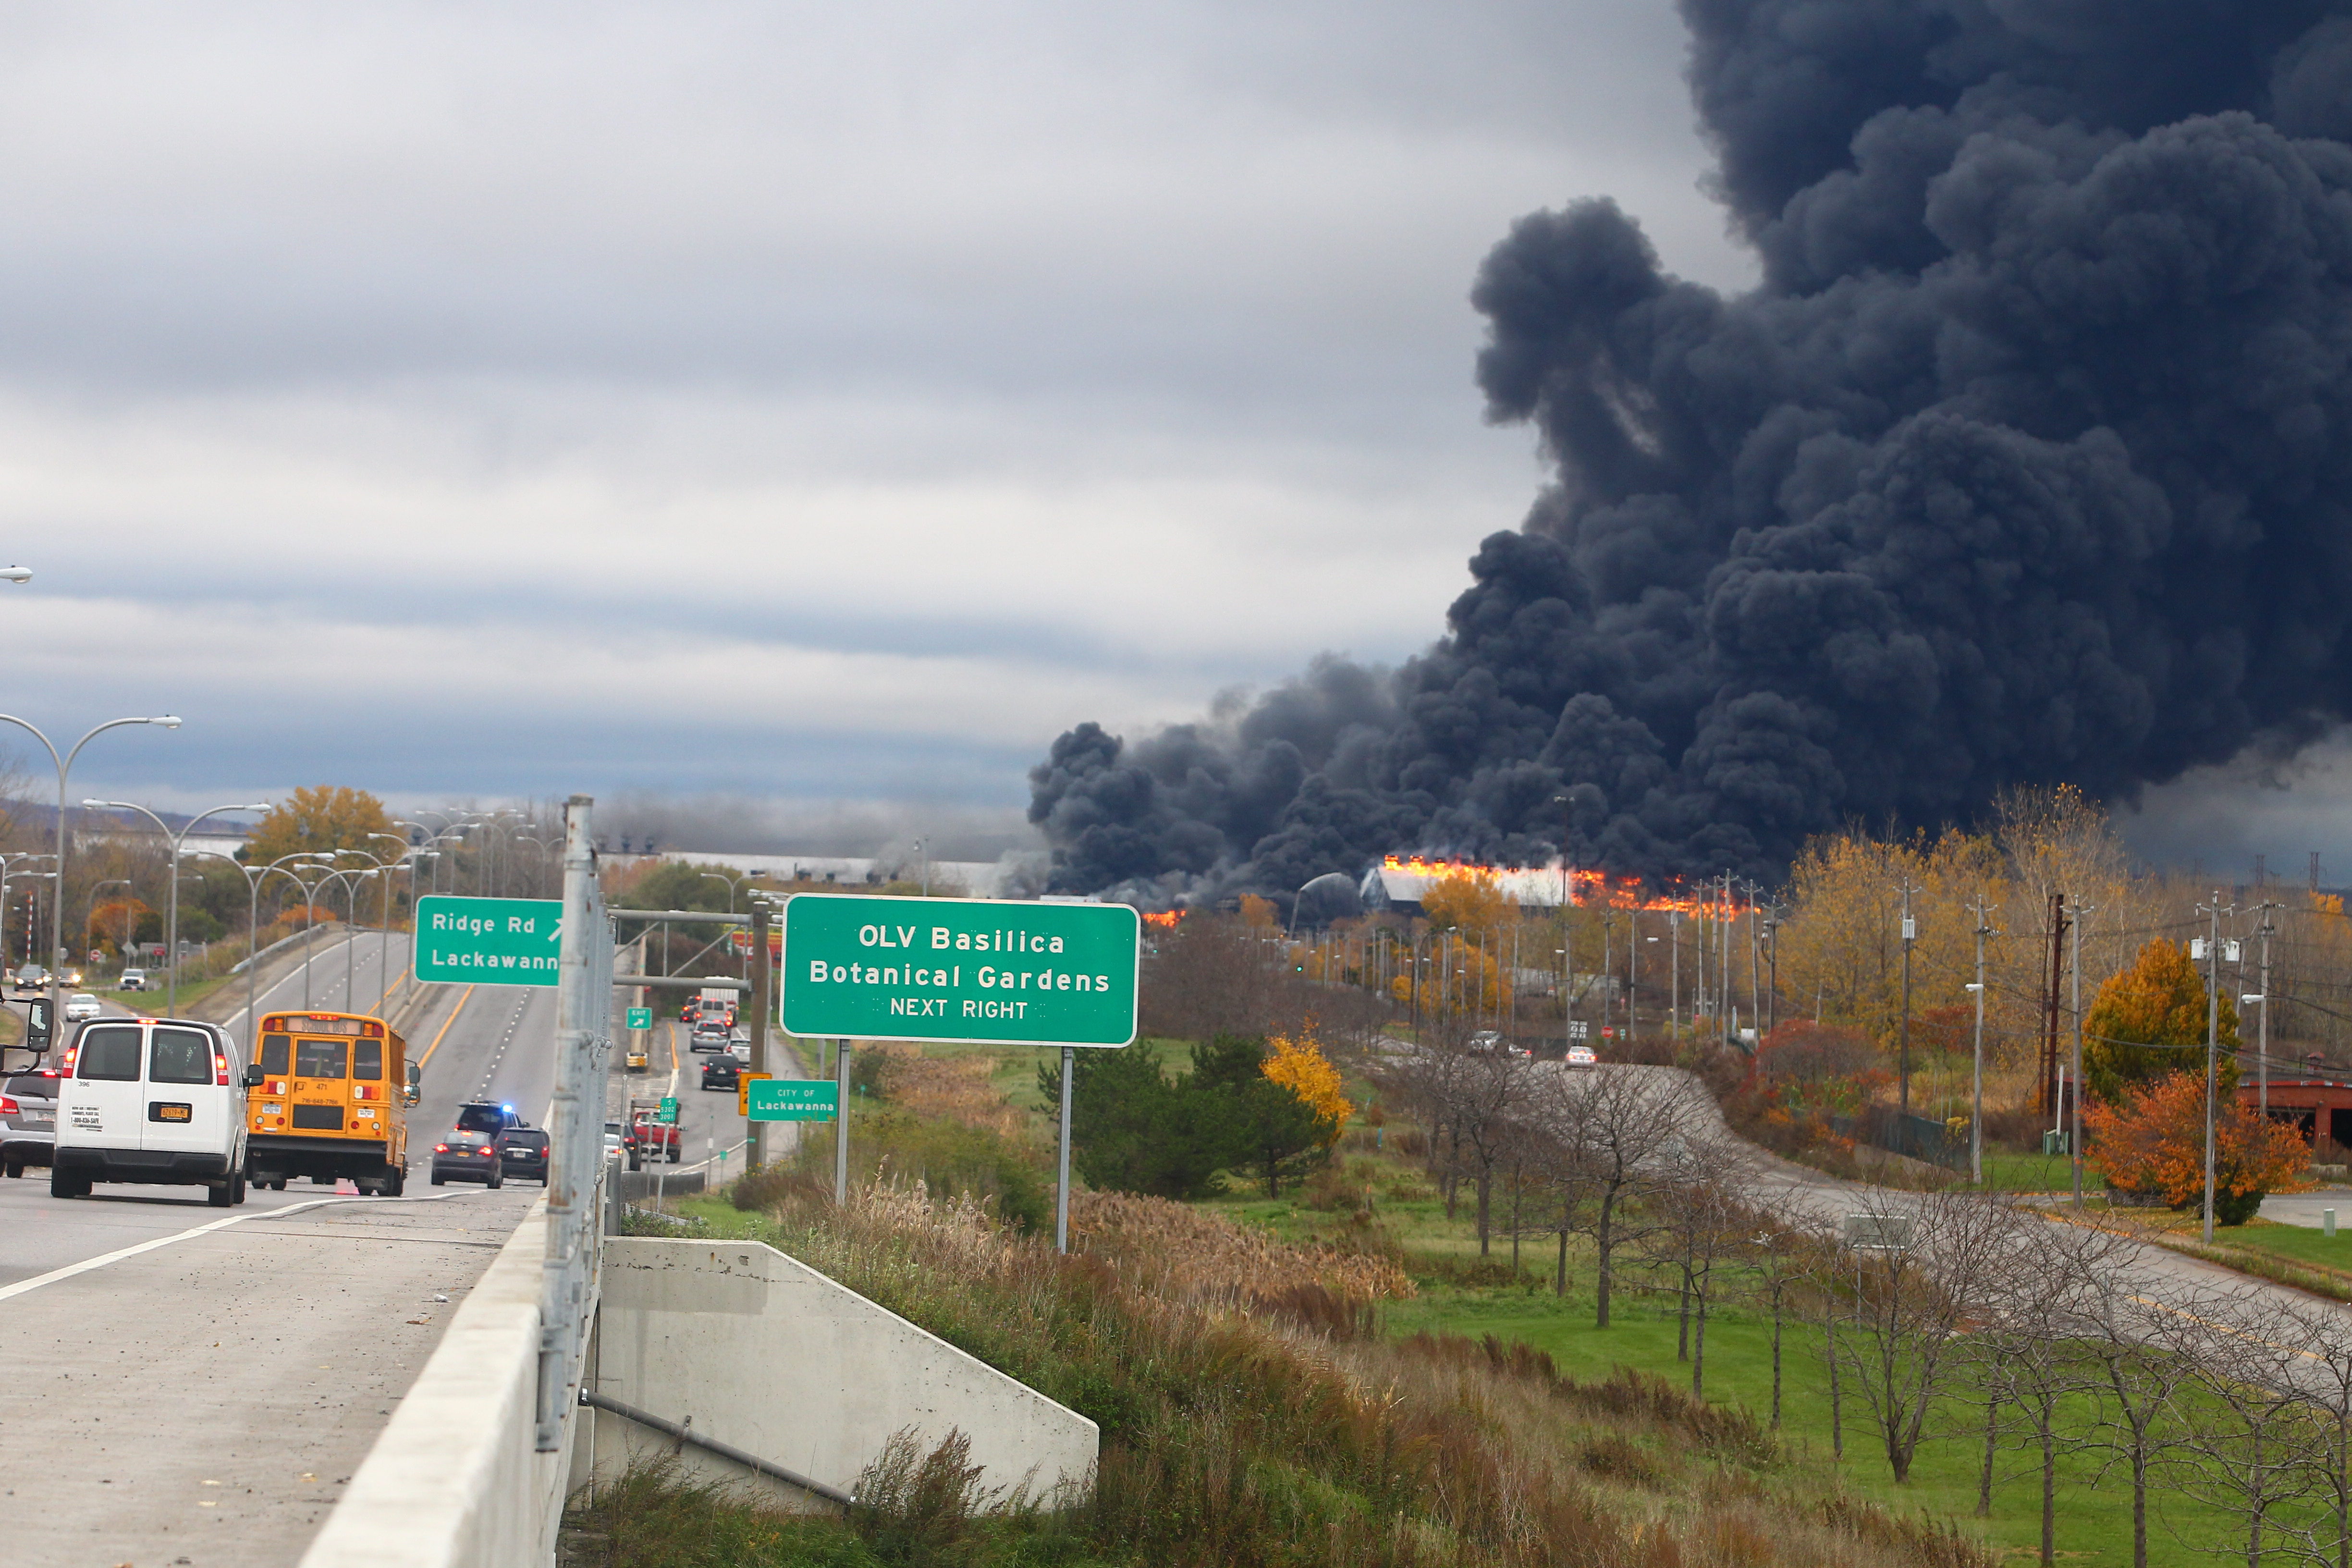 A fire rages at the former Bethlehem Steel storage along Route 5, in Lackawanna, on Wednesday, Nov. 9. (John Hickey/Buffalo News)